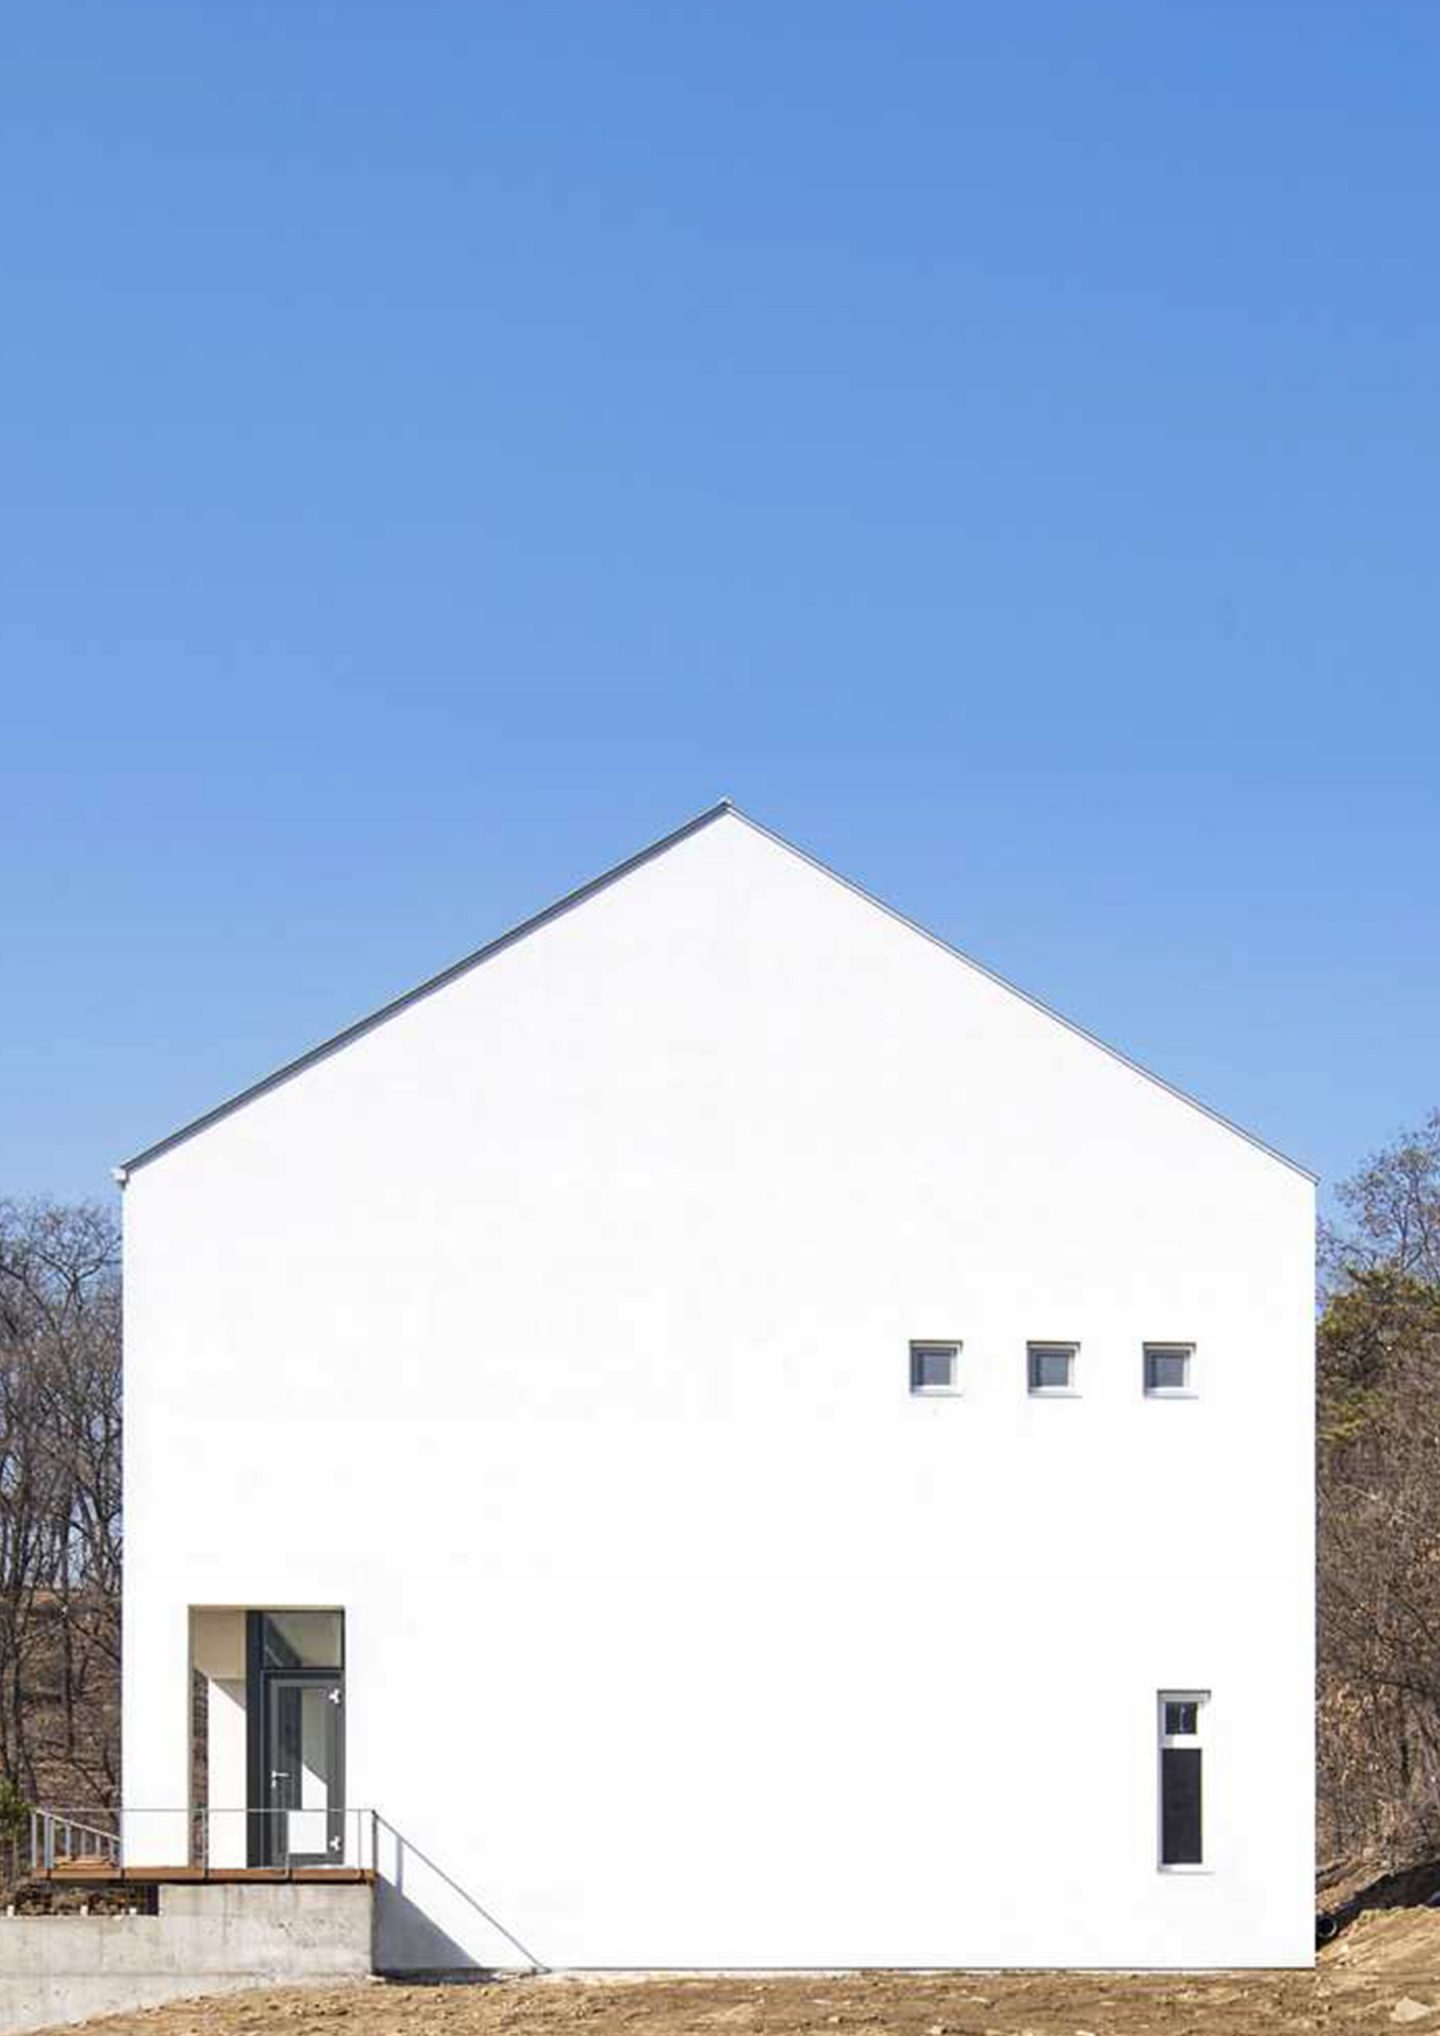 iGNANT-Design-ADesign-Chang-Kyu-Lee-A-House-001b